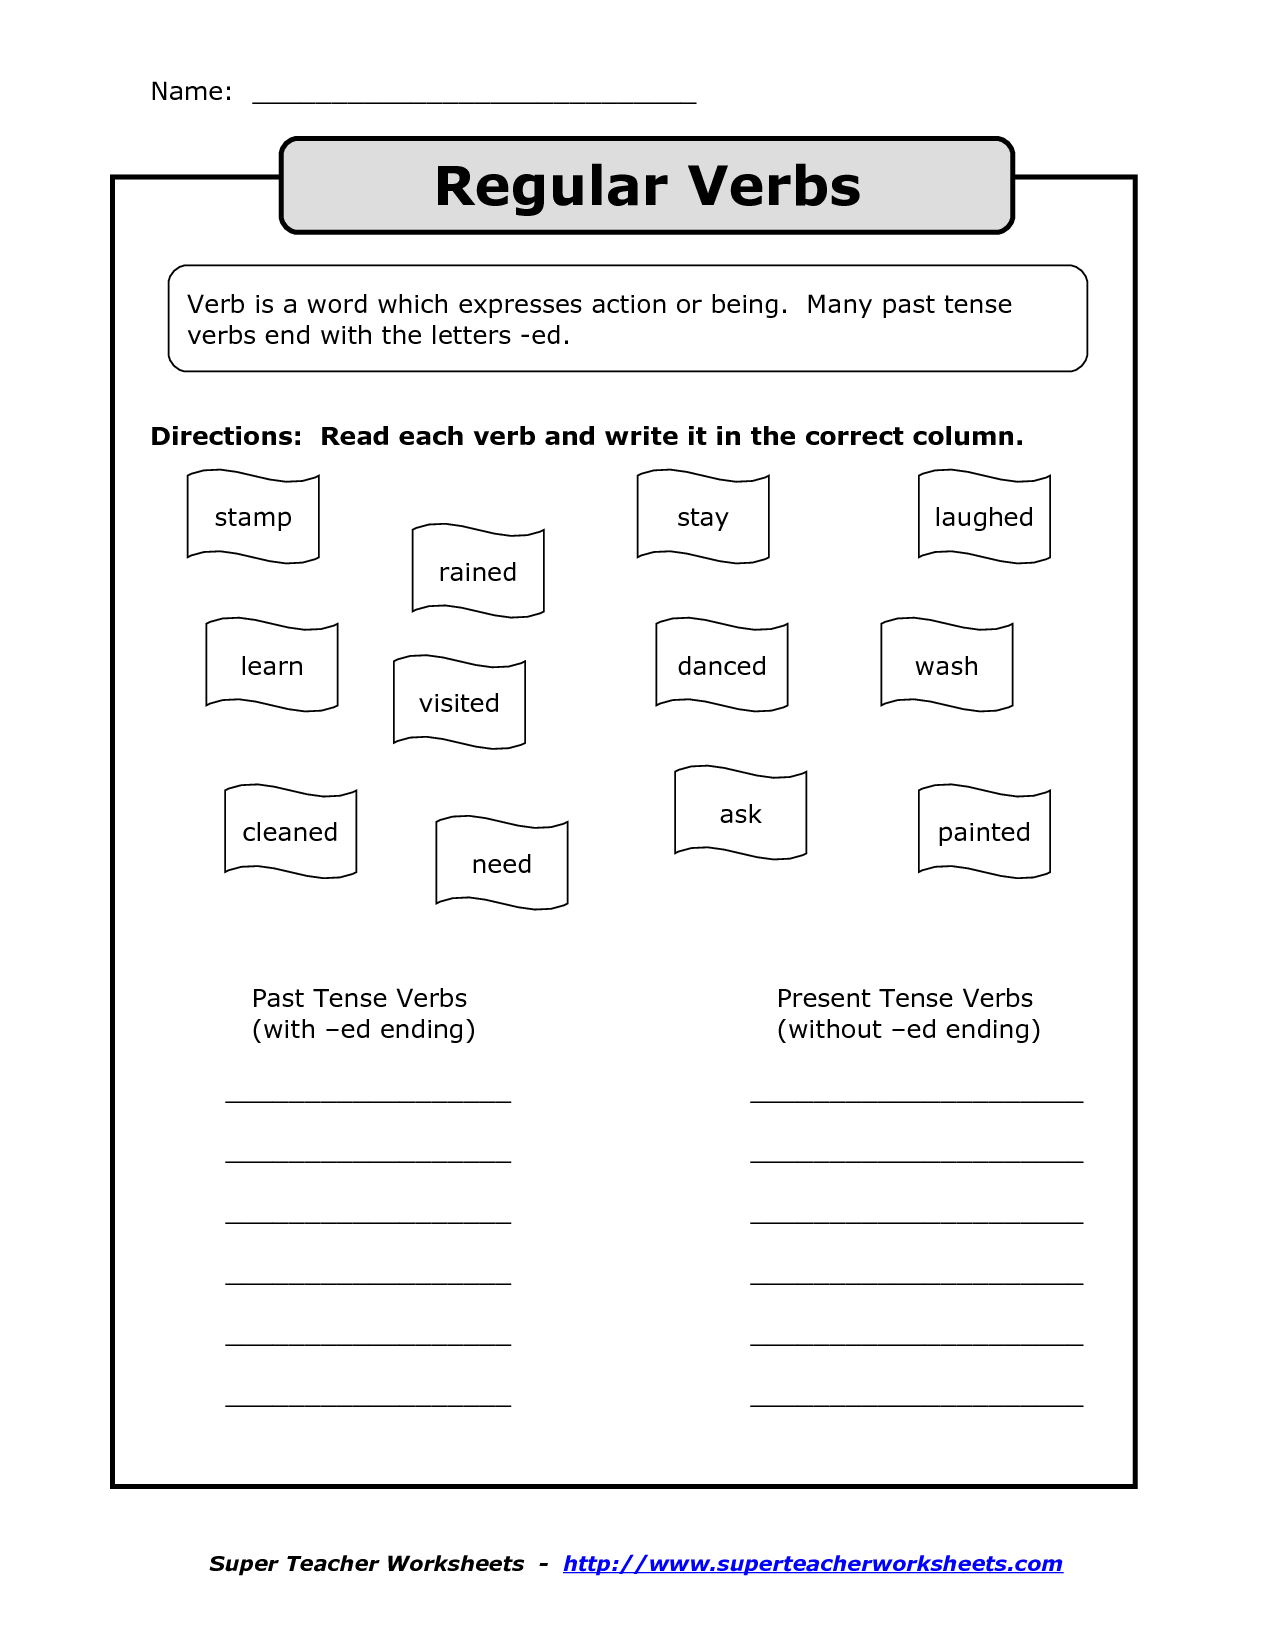 Irregular Past Participle Verbs Exercises